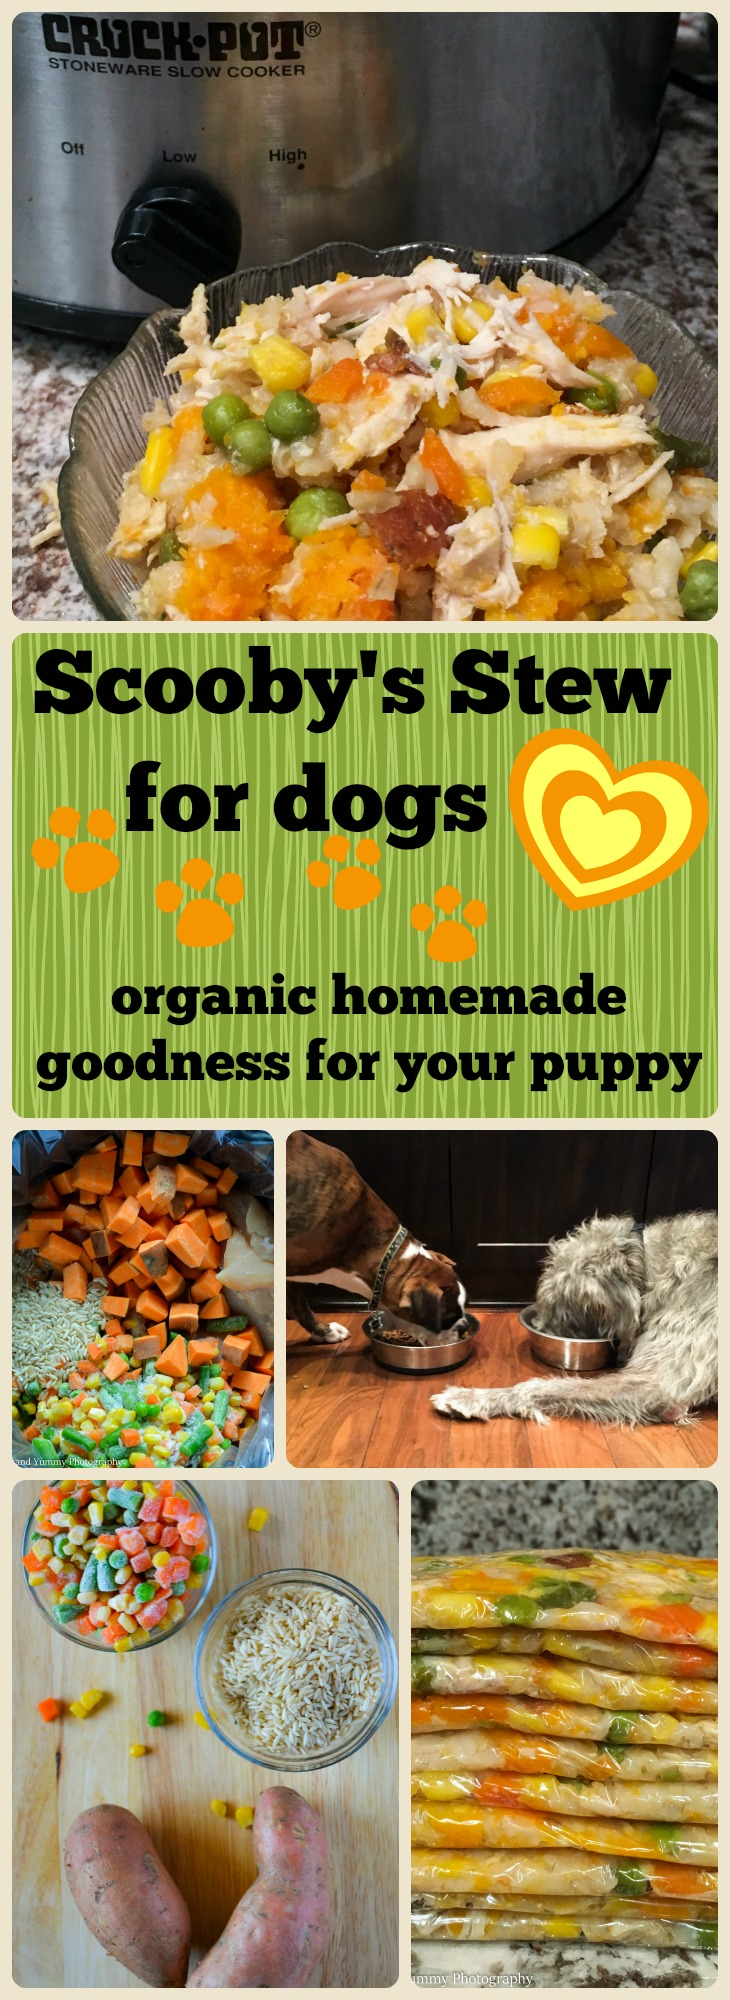 Scoobys organic stew for dogs happy and yummy scoobys stew long image forumfinder Choice Image